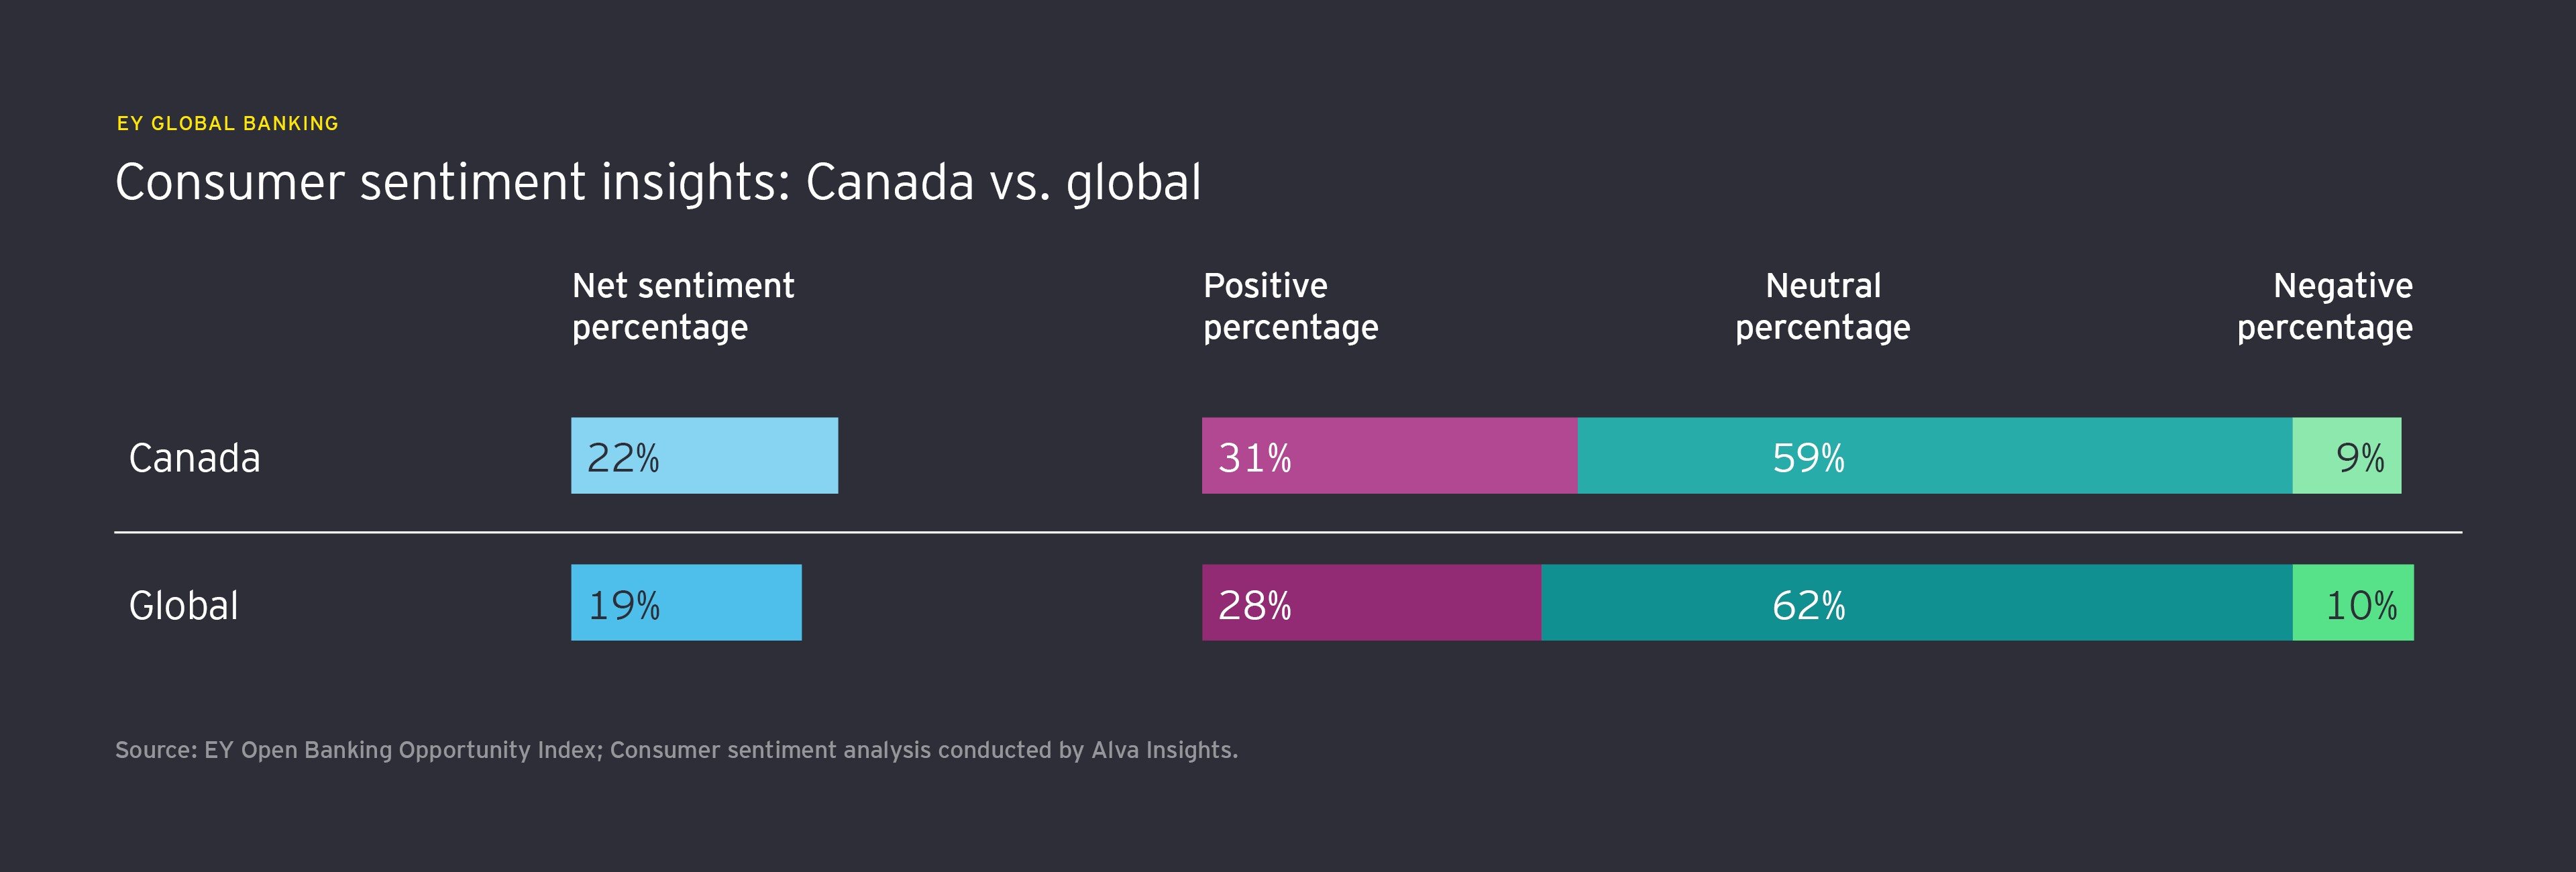 consumer sentiment insights canada